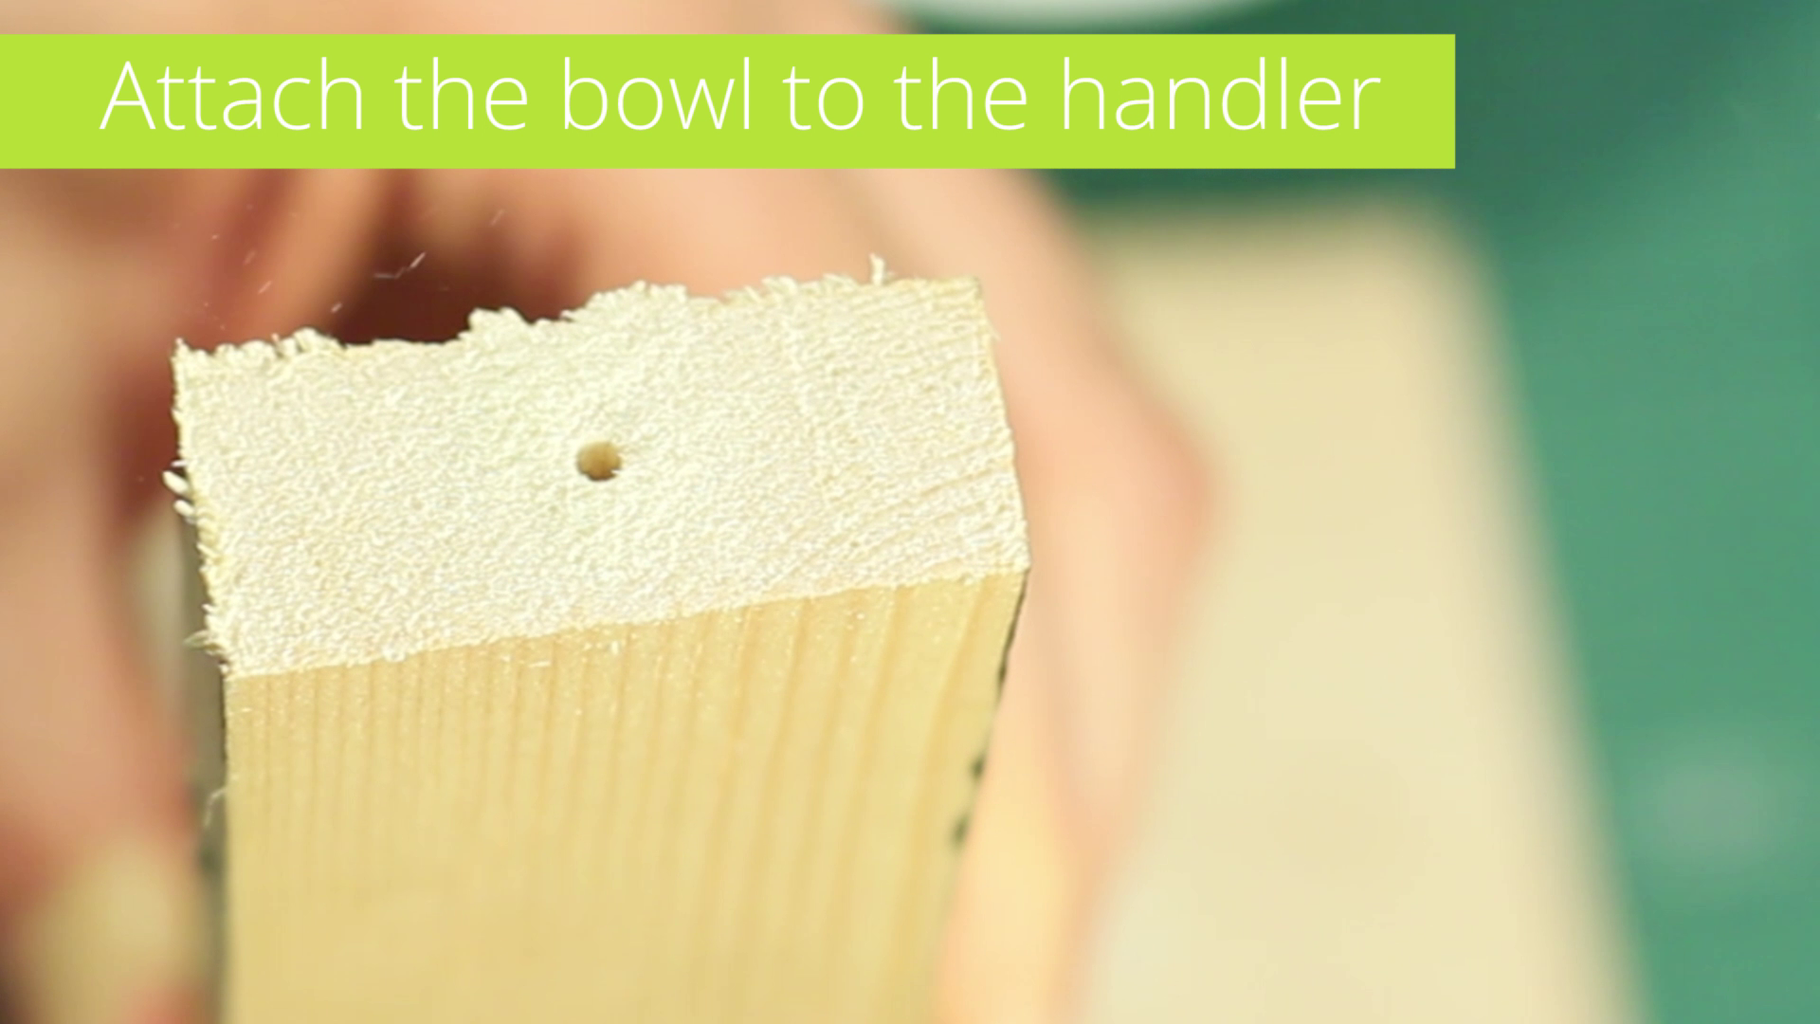 Attach the Bowl to the Handler